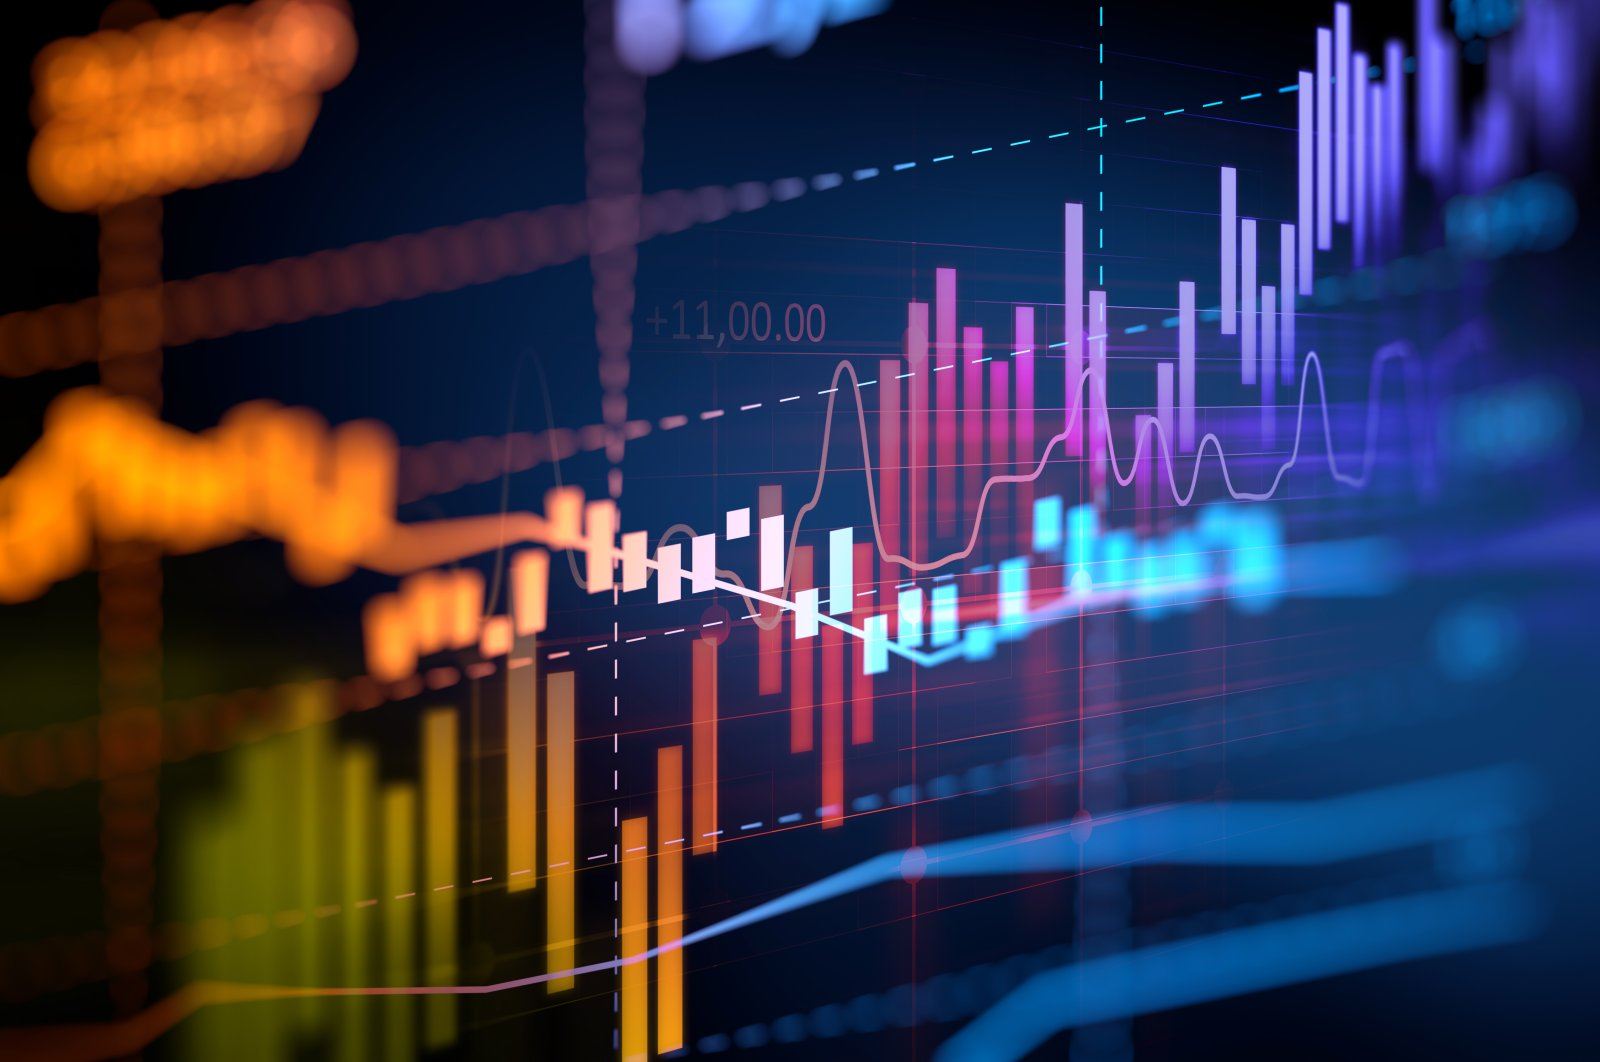 With its tested institutions and mechanisms, Islamic finance offers some great opportunities to revive the pandemic-hit global economy. (iStock photo)